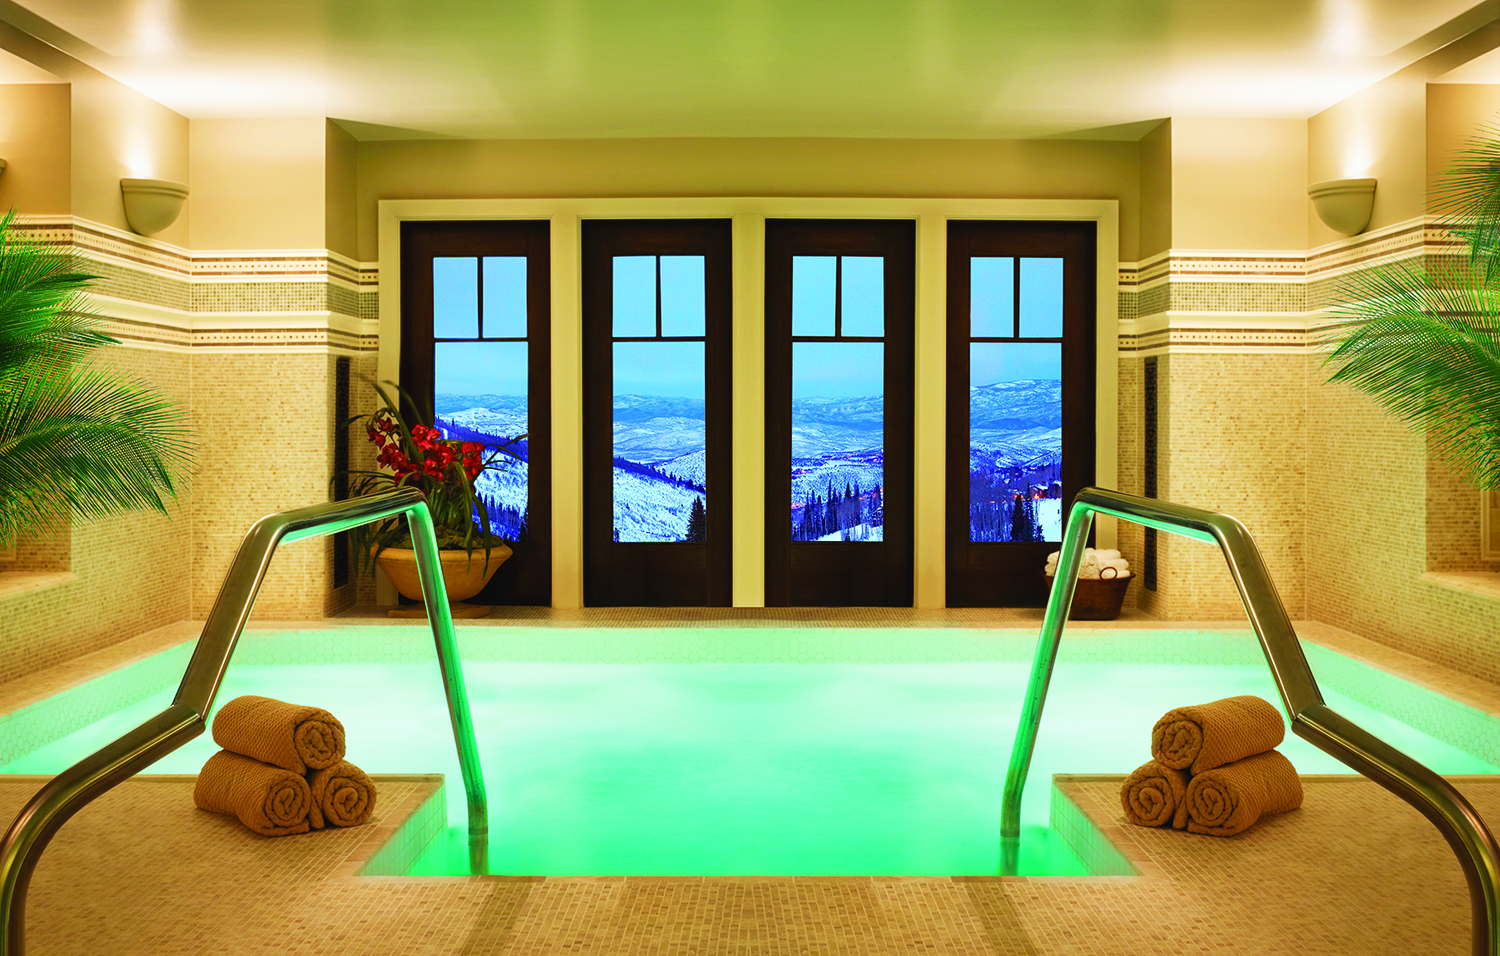 Spa Montage Deer Valley offers relaxing jetted whirlpools among its amenities.